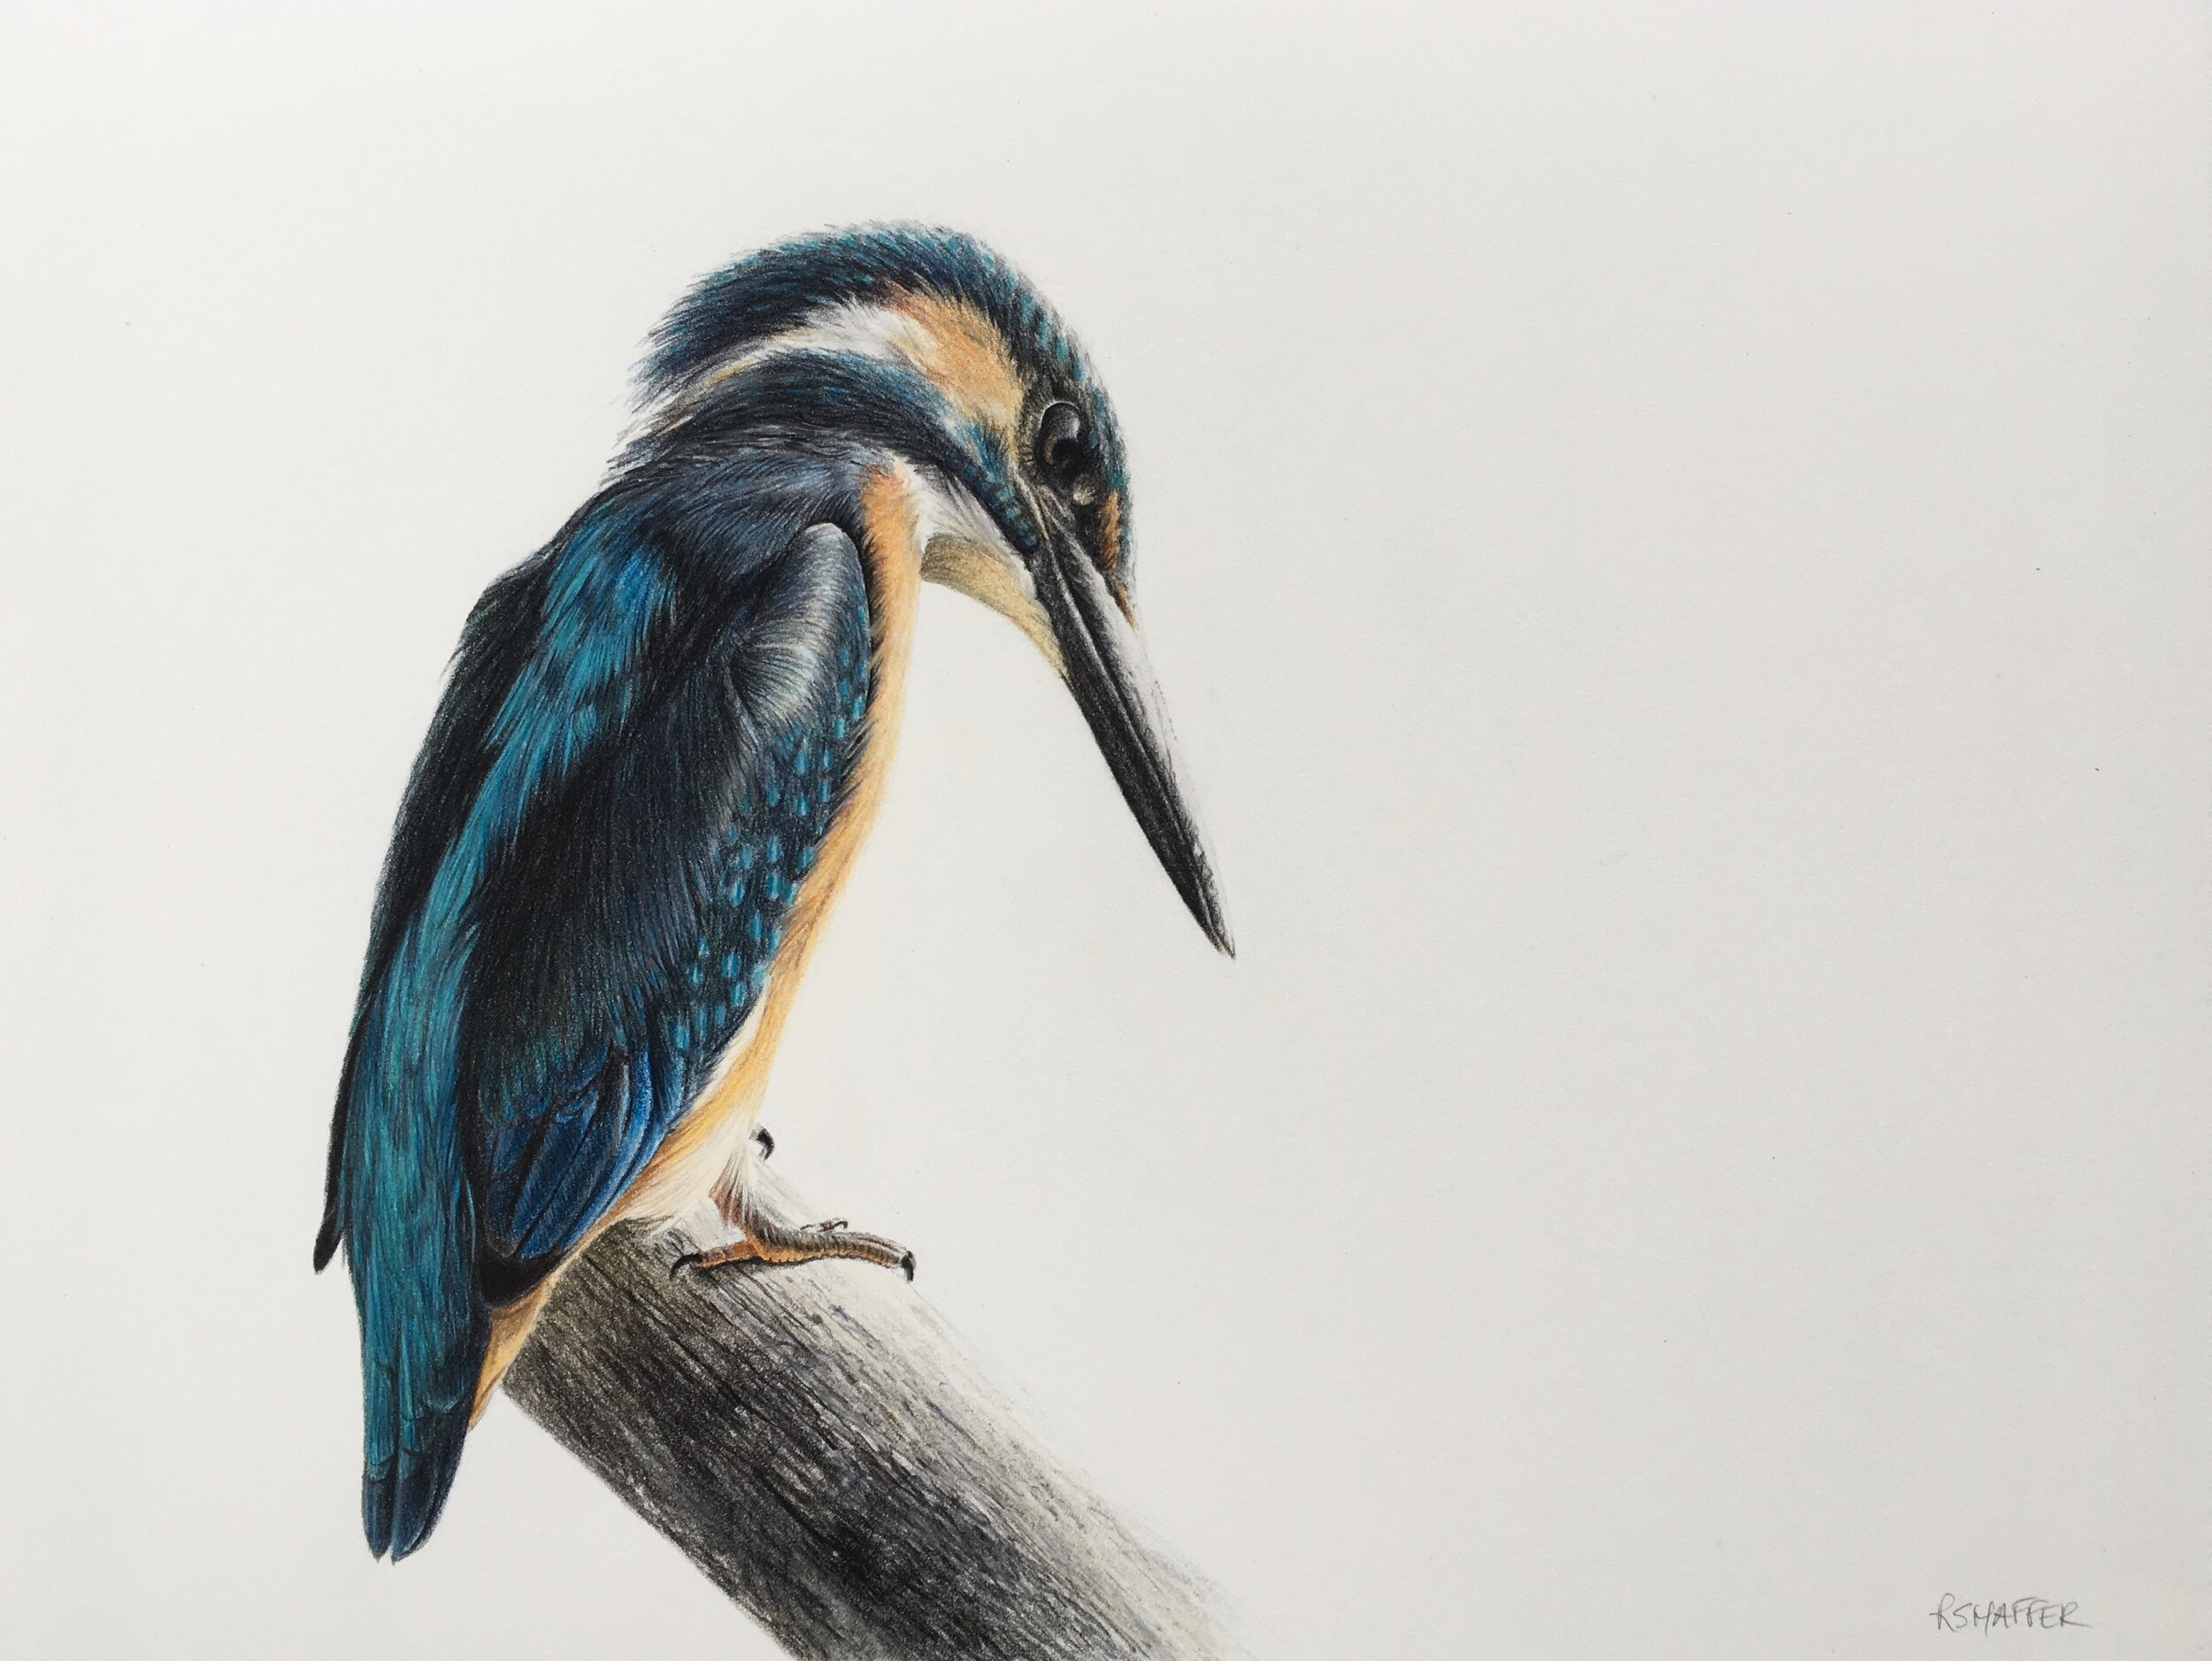 "Fisherking (Kingfisher), 9x12"", colored pencil on paper"